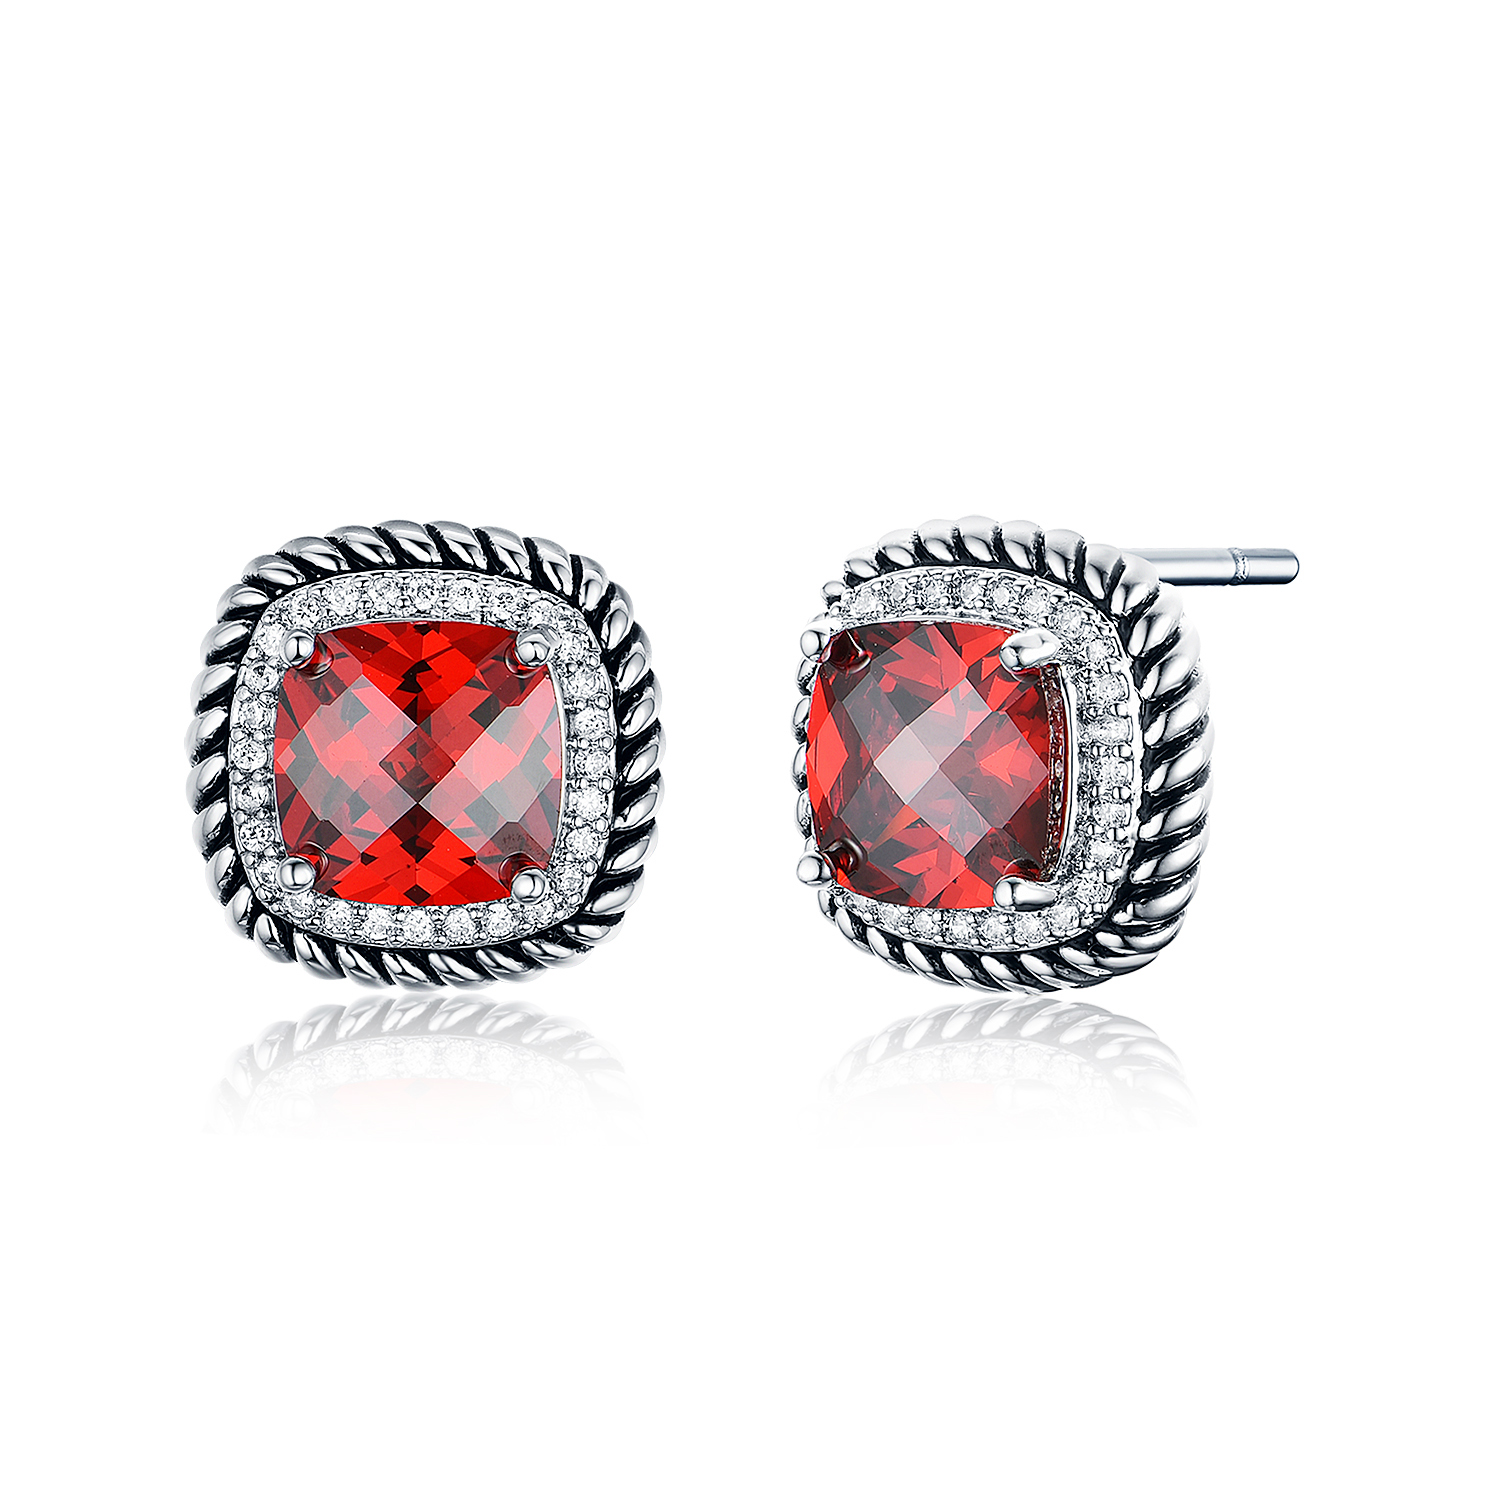 ST2640E- Designer inspired Cable texture Square Earring with Square Garnet Cubic Zircon & small White CZ surrounded under Rhodium plated from China Top Jewelry vendor